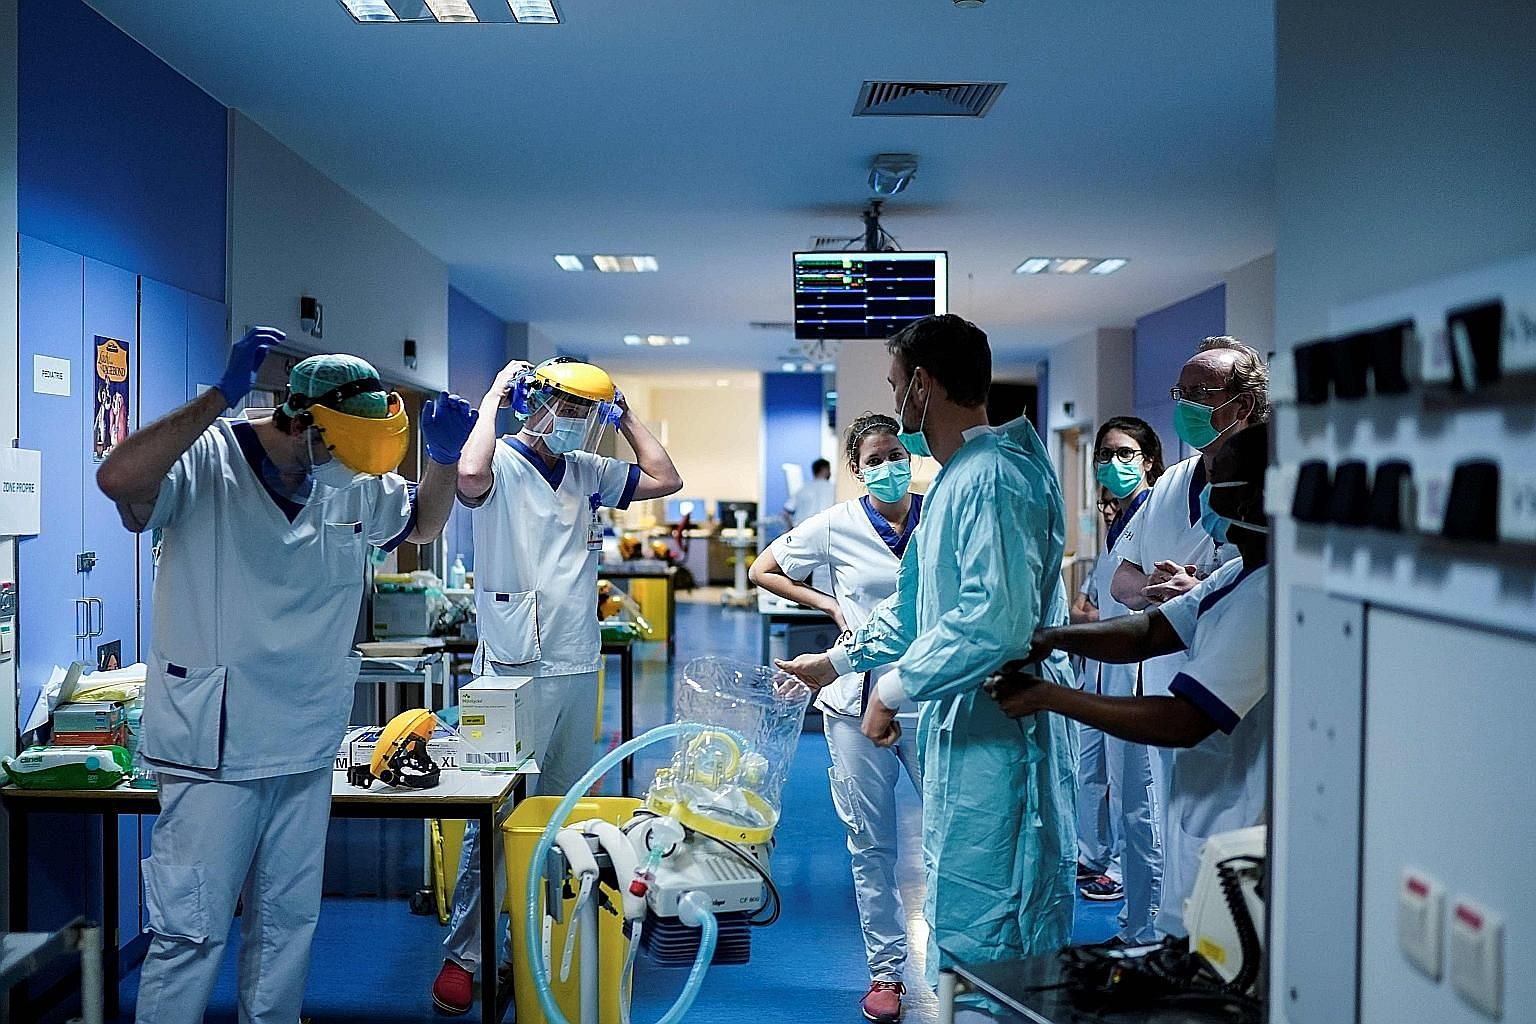 Medical staff putting on protective gear last Friday before treating Covid-19 patients at the Erasme Hospital in Brussels. The adoption of a road map for the global community is vital because there will be another outbreak in the future, perhaps more